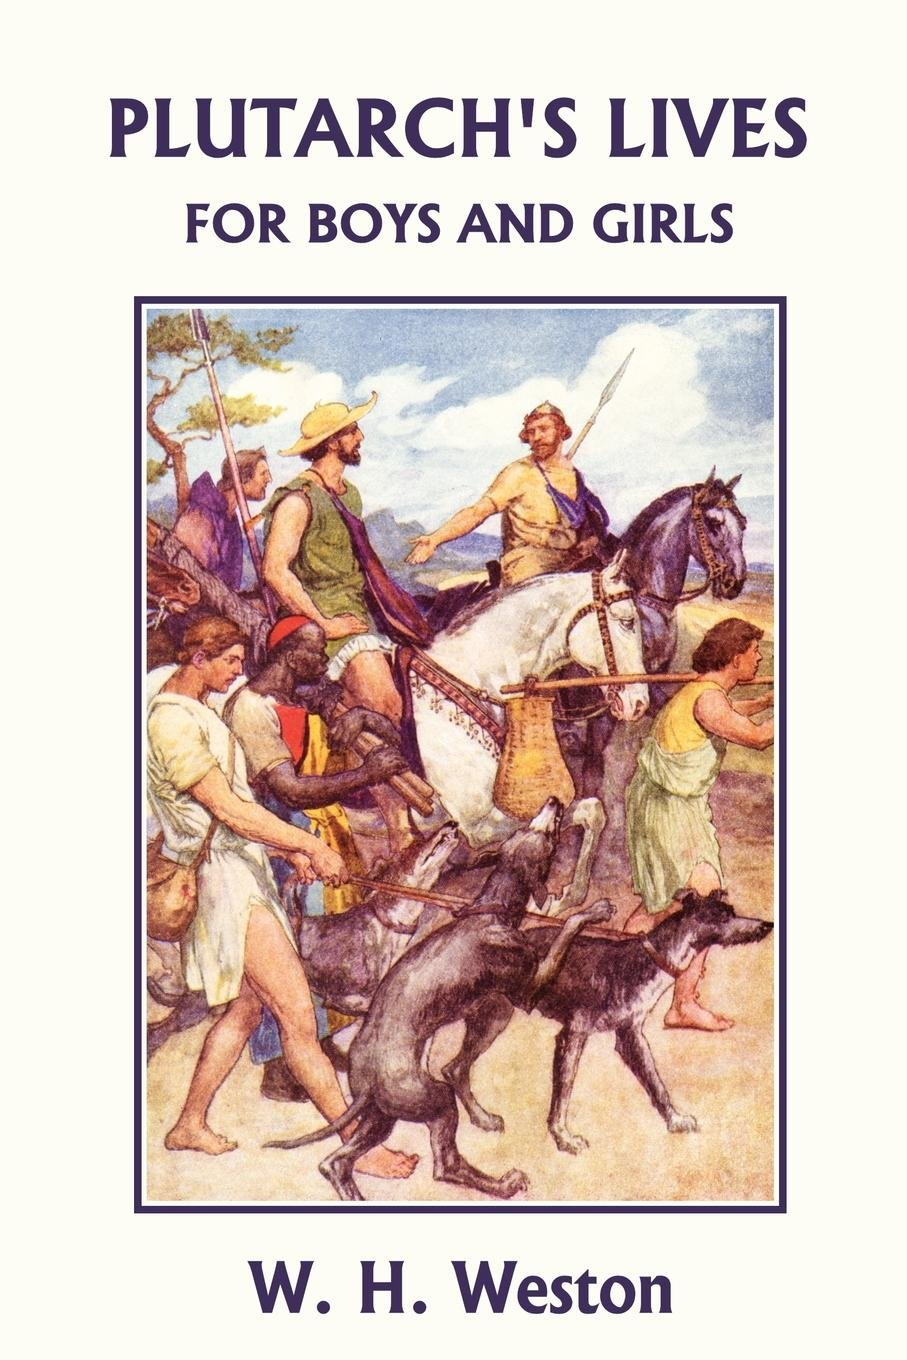 Plutarch's Lives for Boys and Girls (Yesterday's Classics) pdf epub